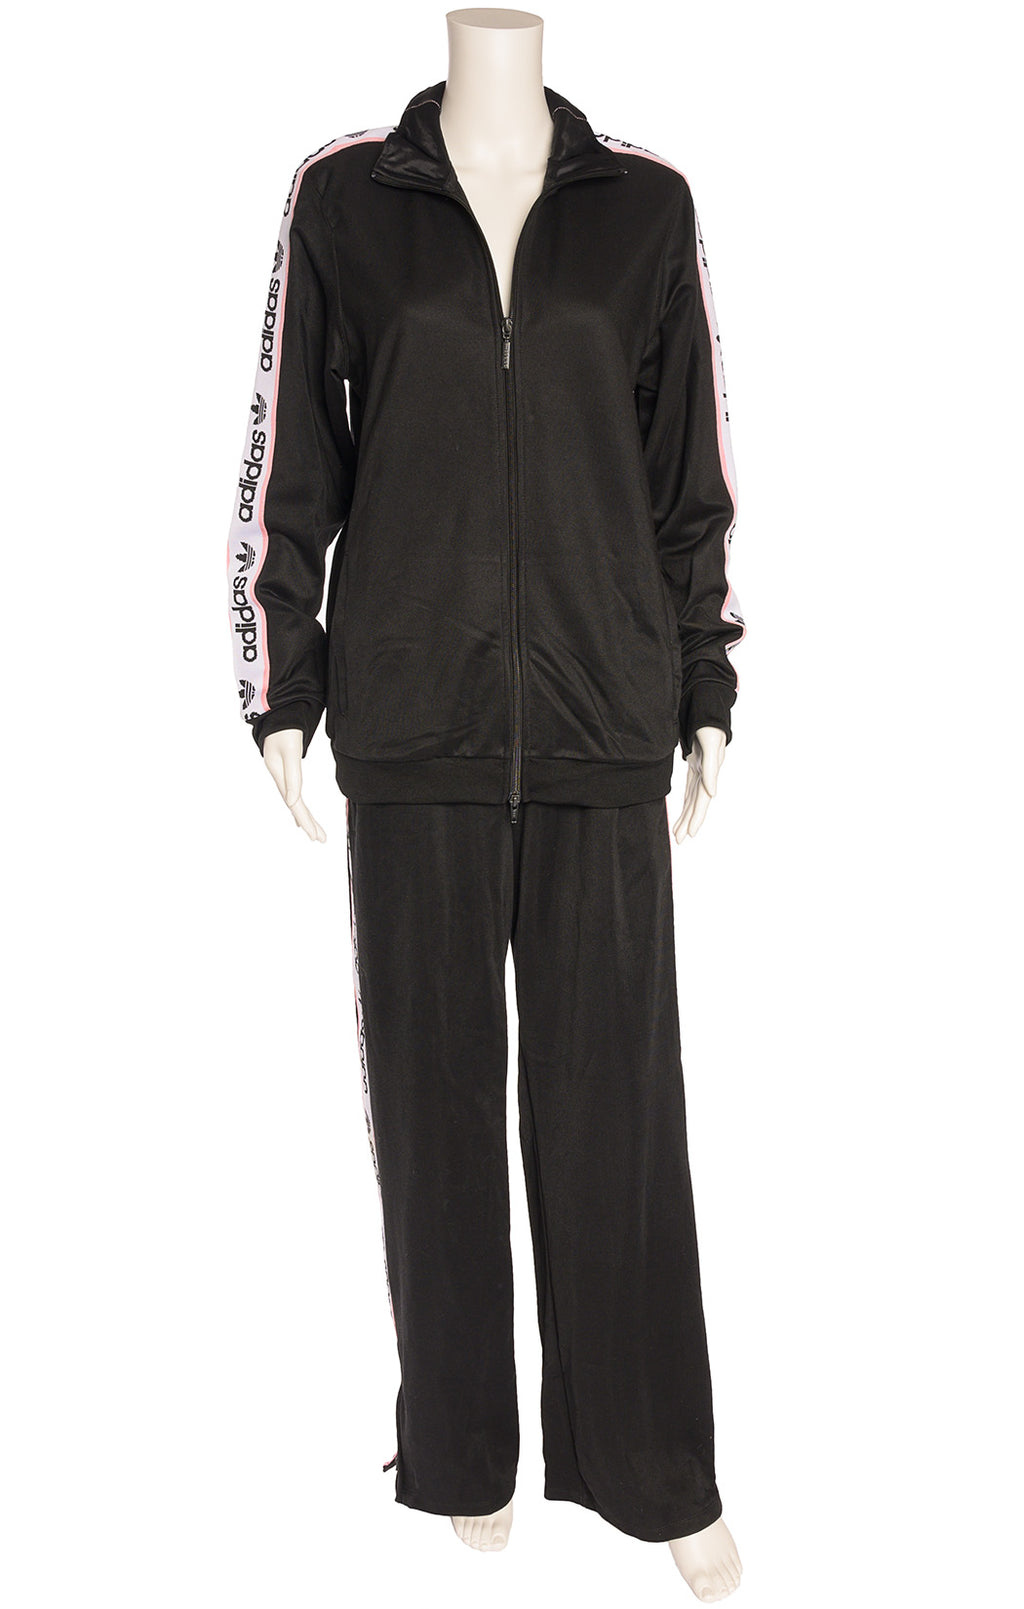 Front view of ADIDAS  Sweat outfit  Size: Medium